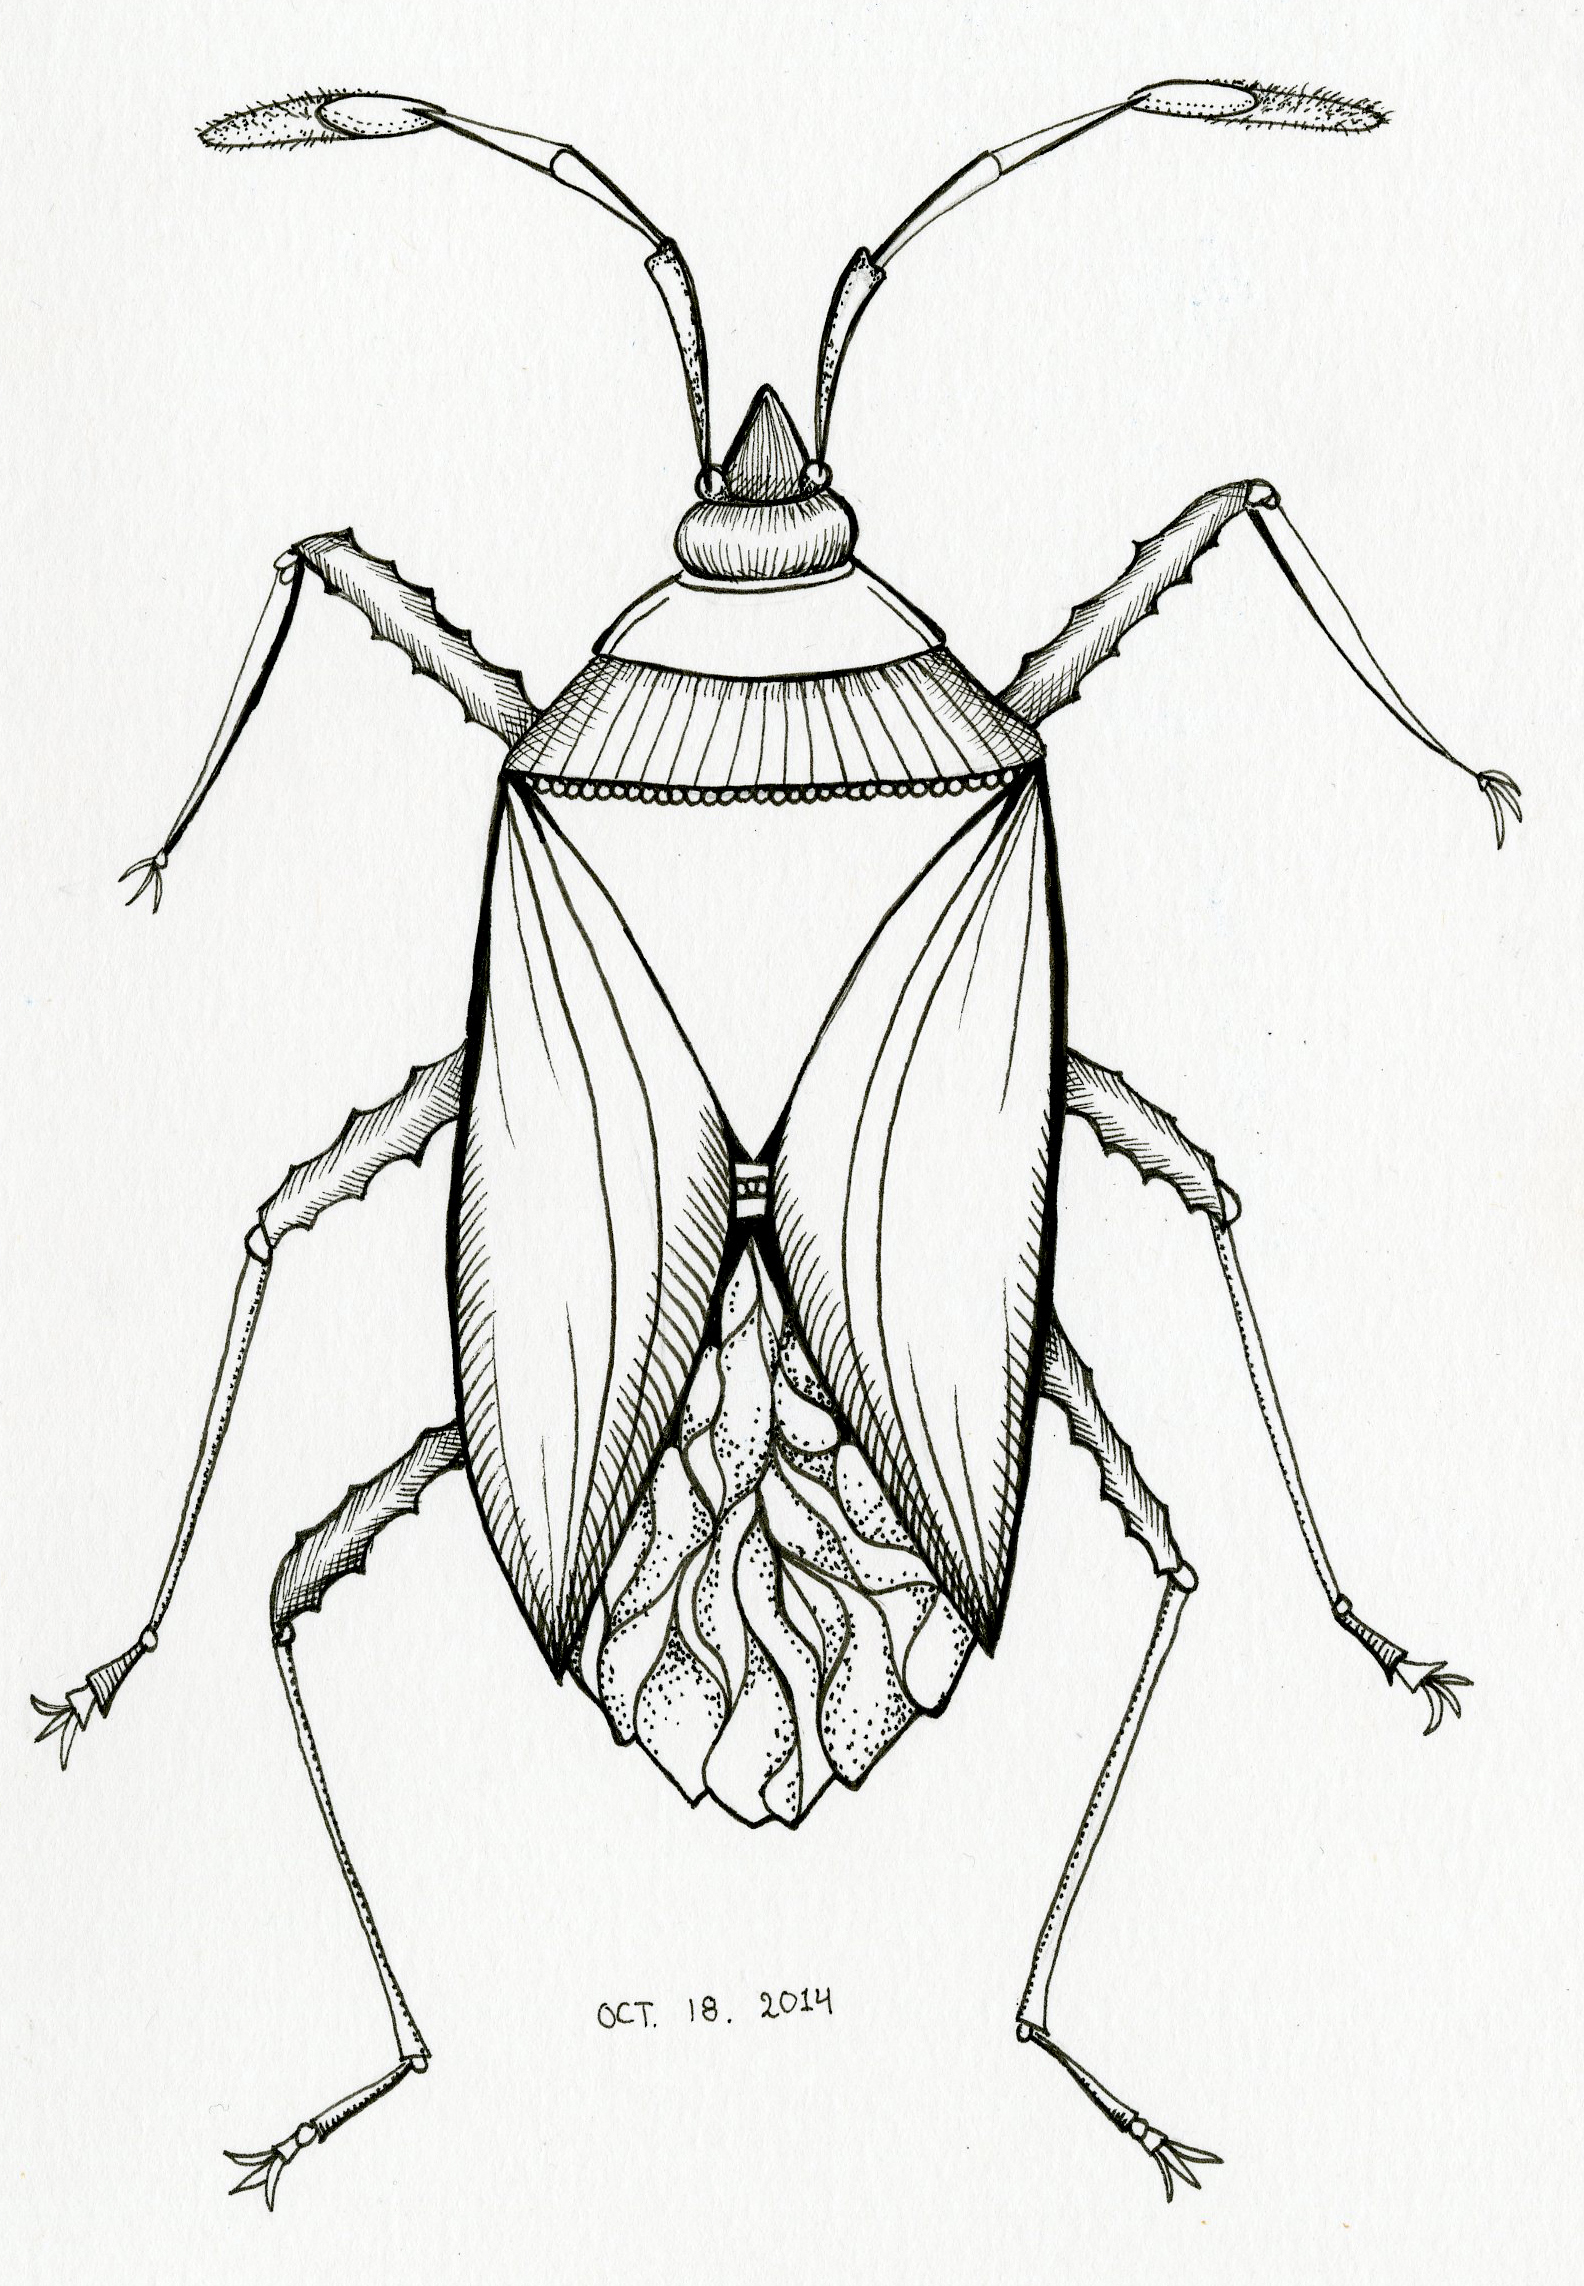 Inktober 18 –Insect!